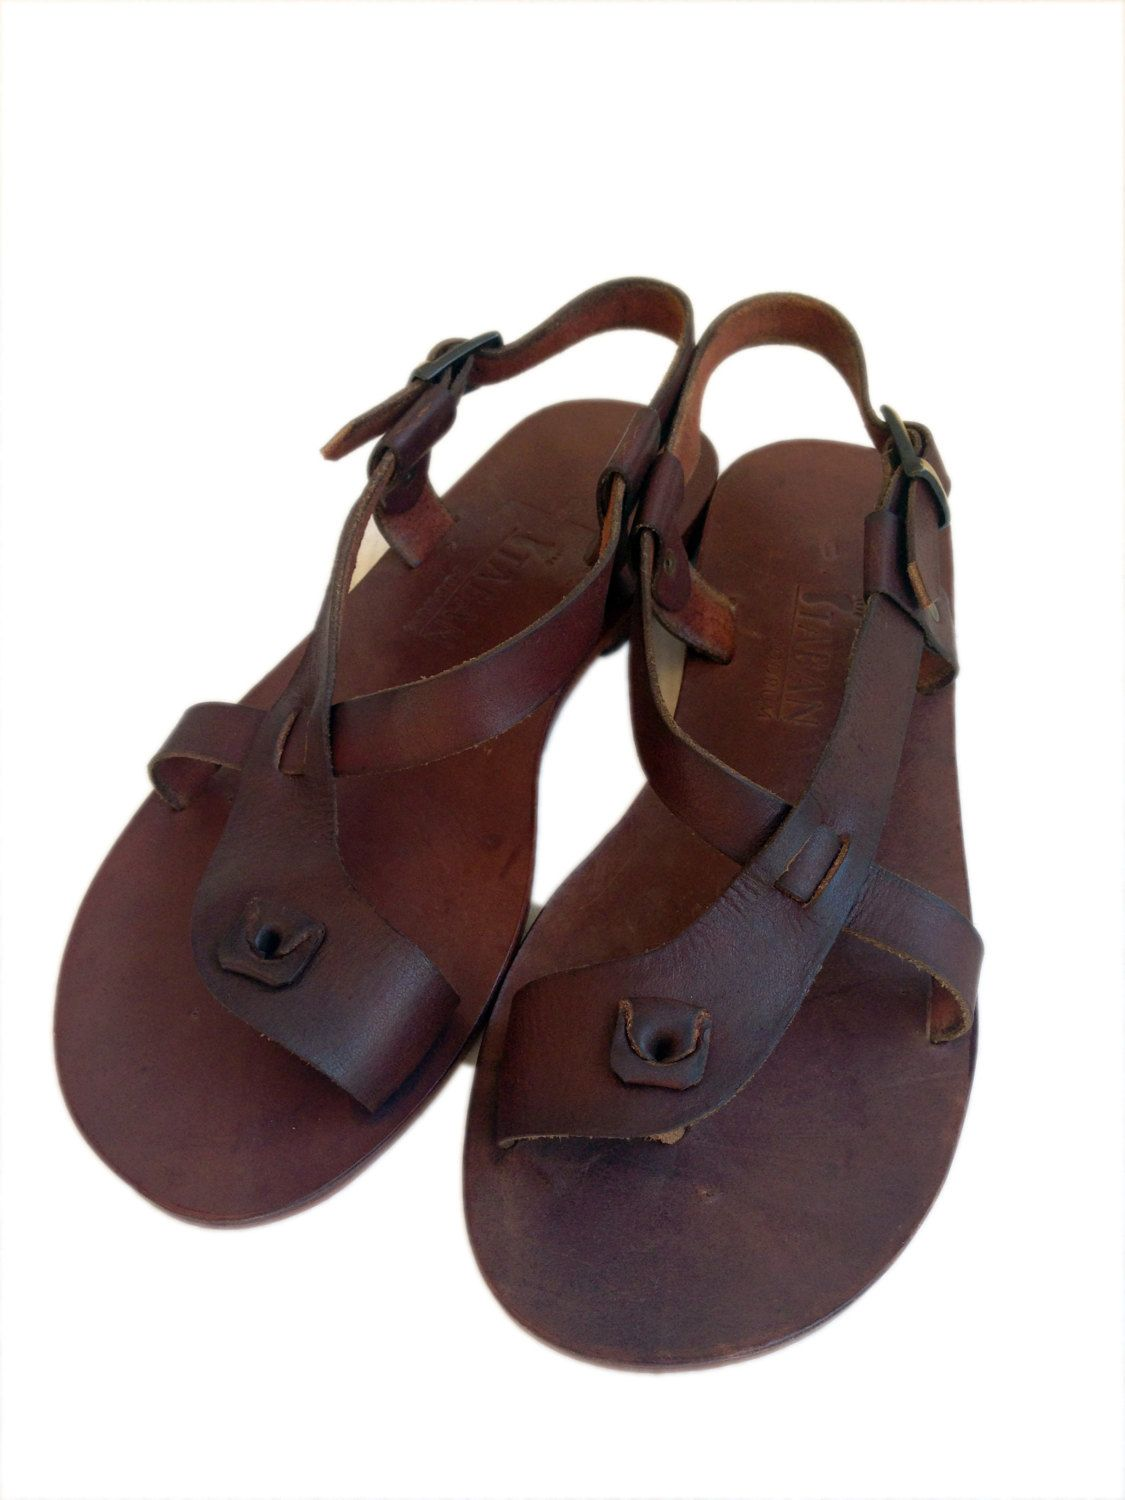 99dfe09f4e8c PERENNA  Asymmetric Ankle Strap Toe Loop Handmade leather sandal custom  size available by BODRUMSANDALS on Etsy